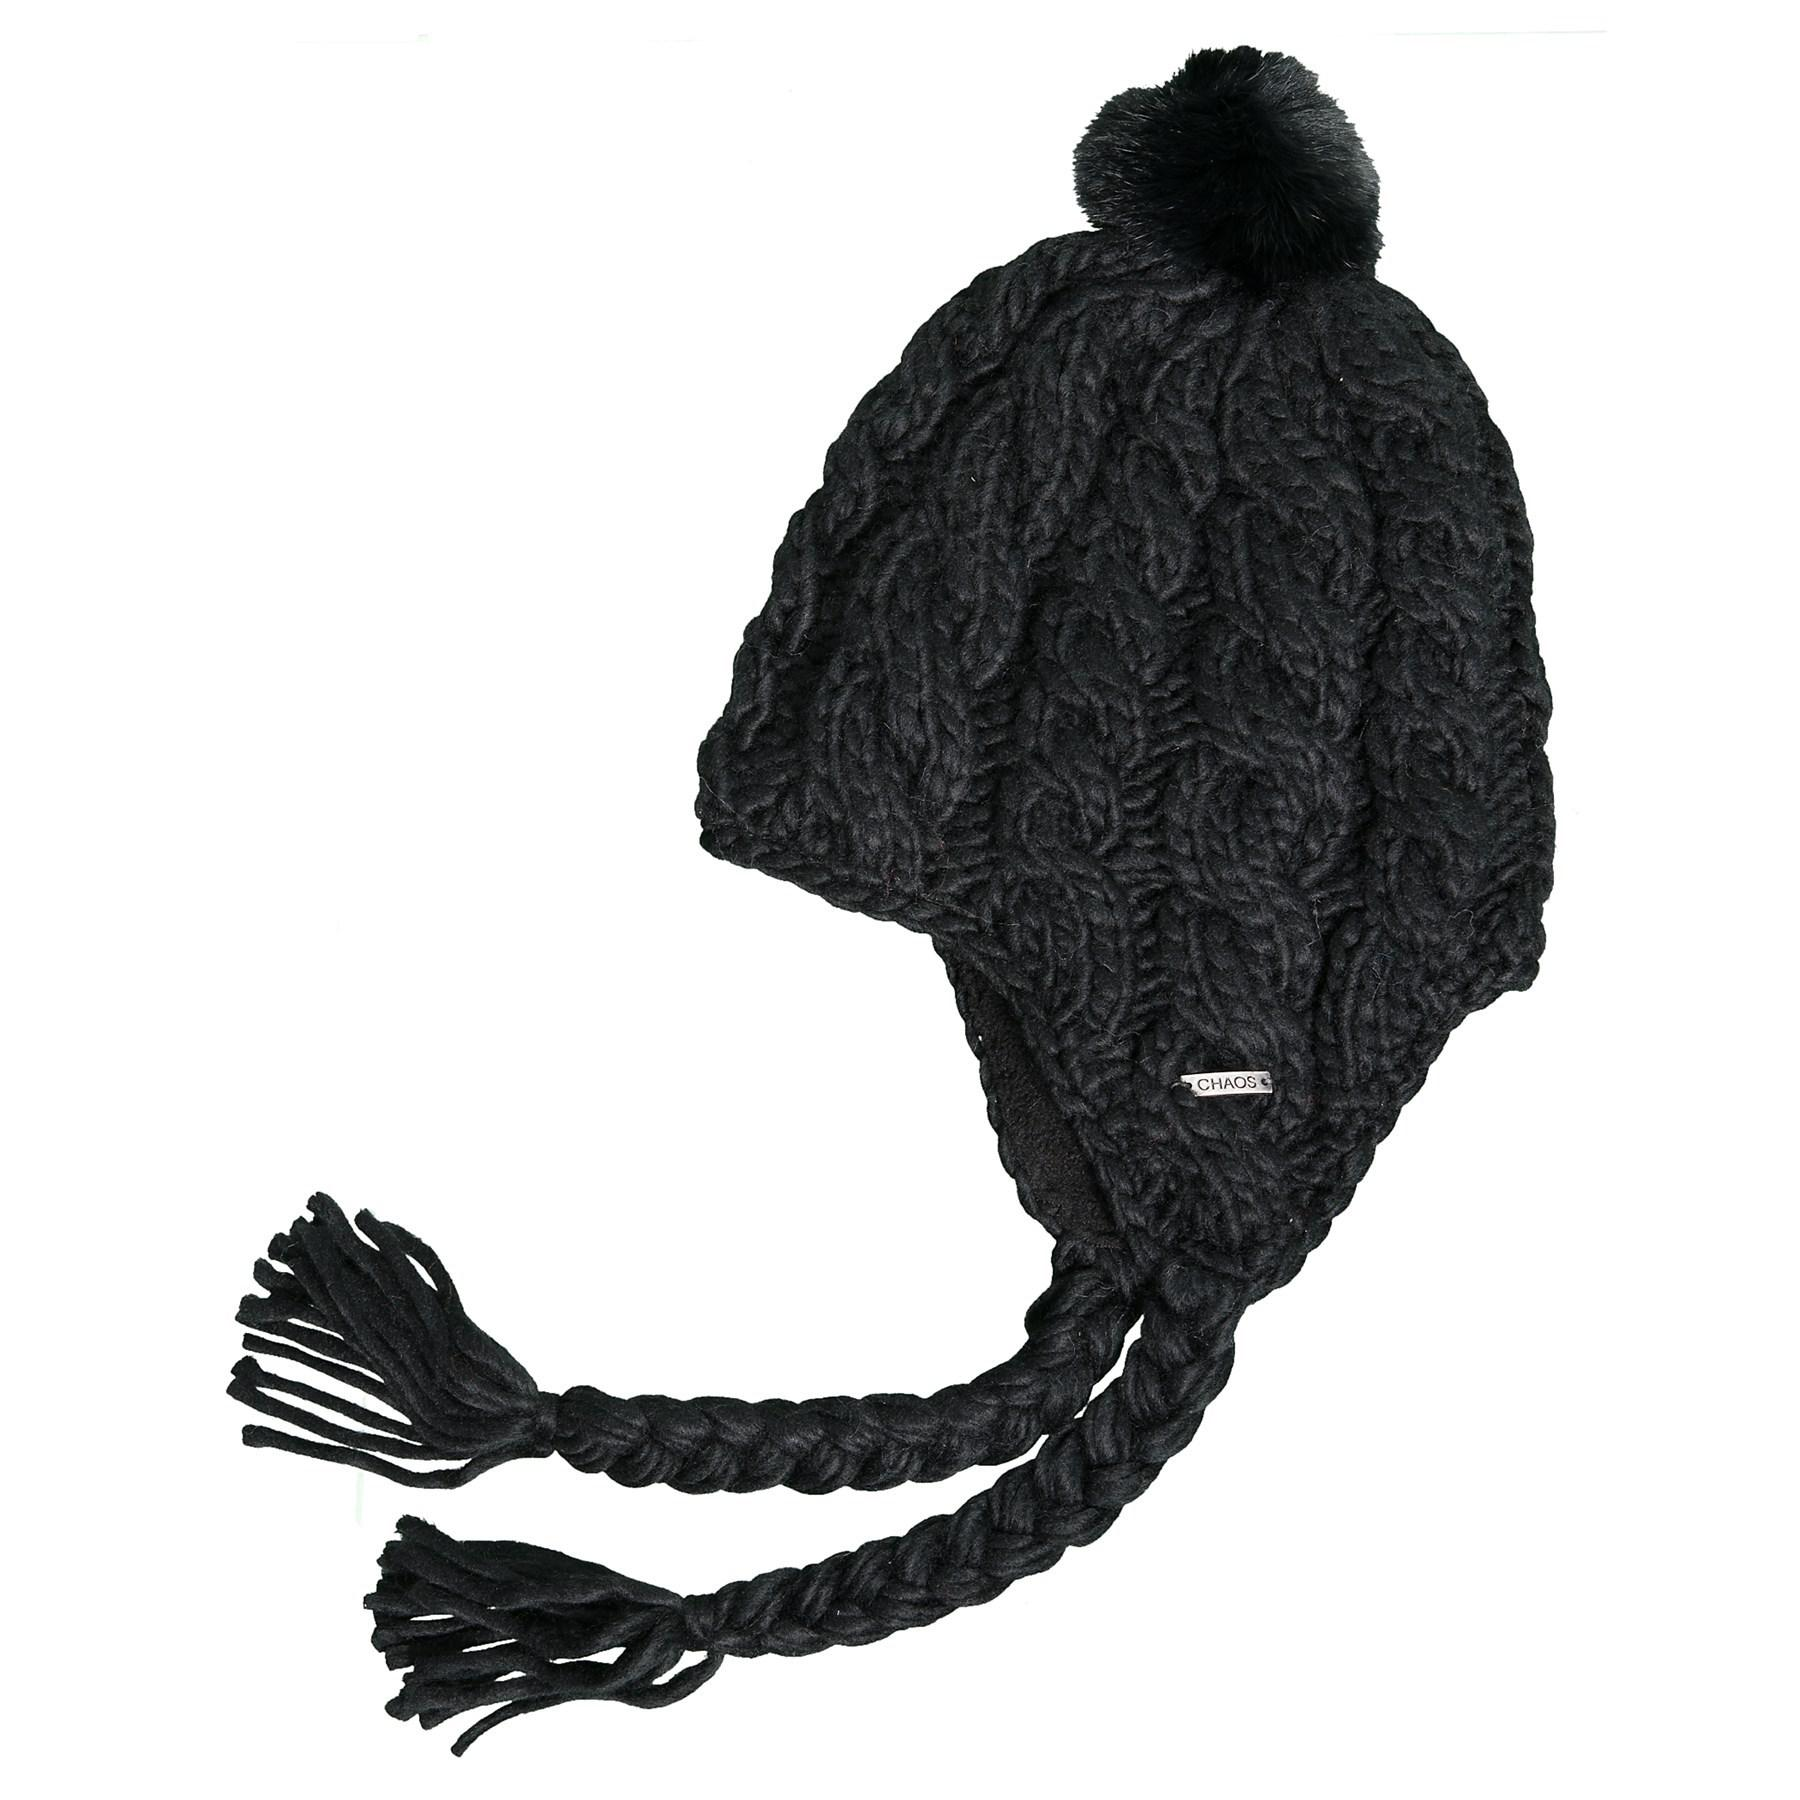 e042daa98c9 Lyst - Chaos Tenille Cable-knit Ear Flap Beanie With Pom (for Women ...